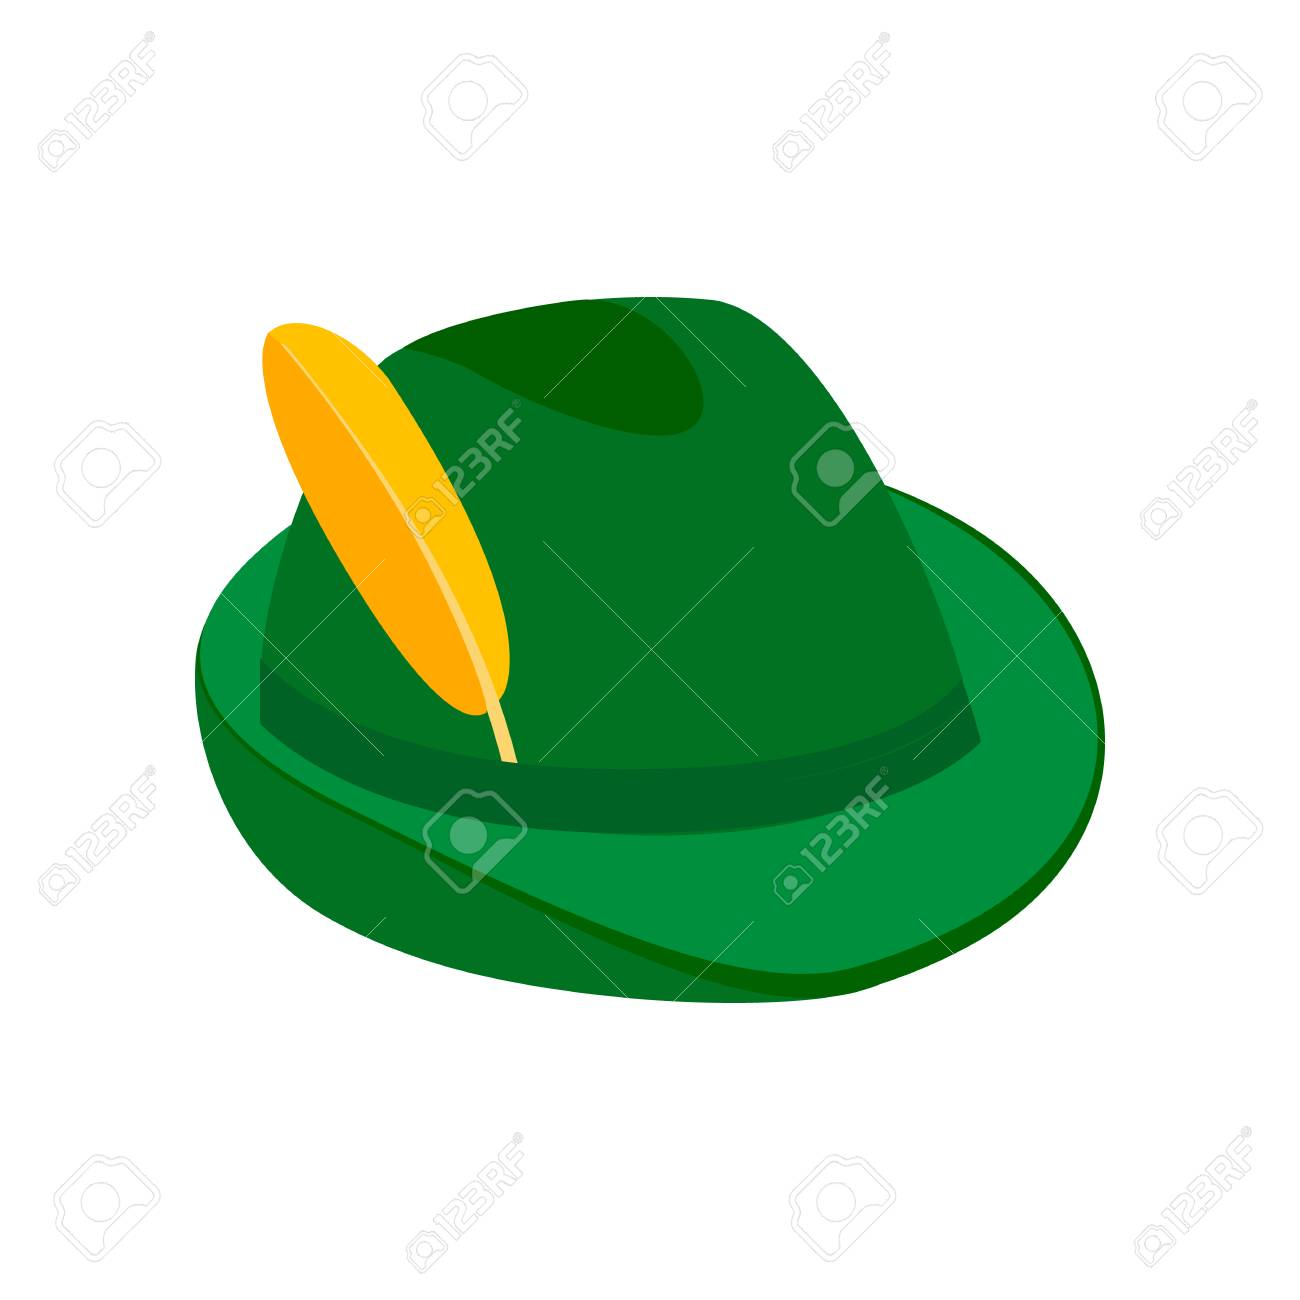 5ac4103f727 Green hat with a feather isometric 3d icon Stock Photo - 107554334